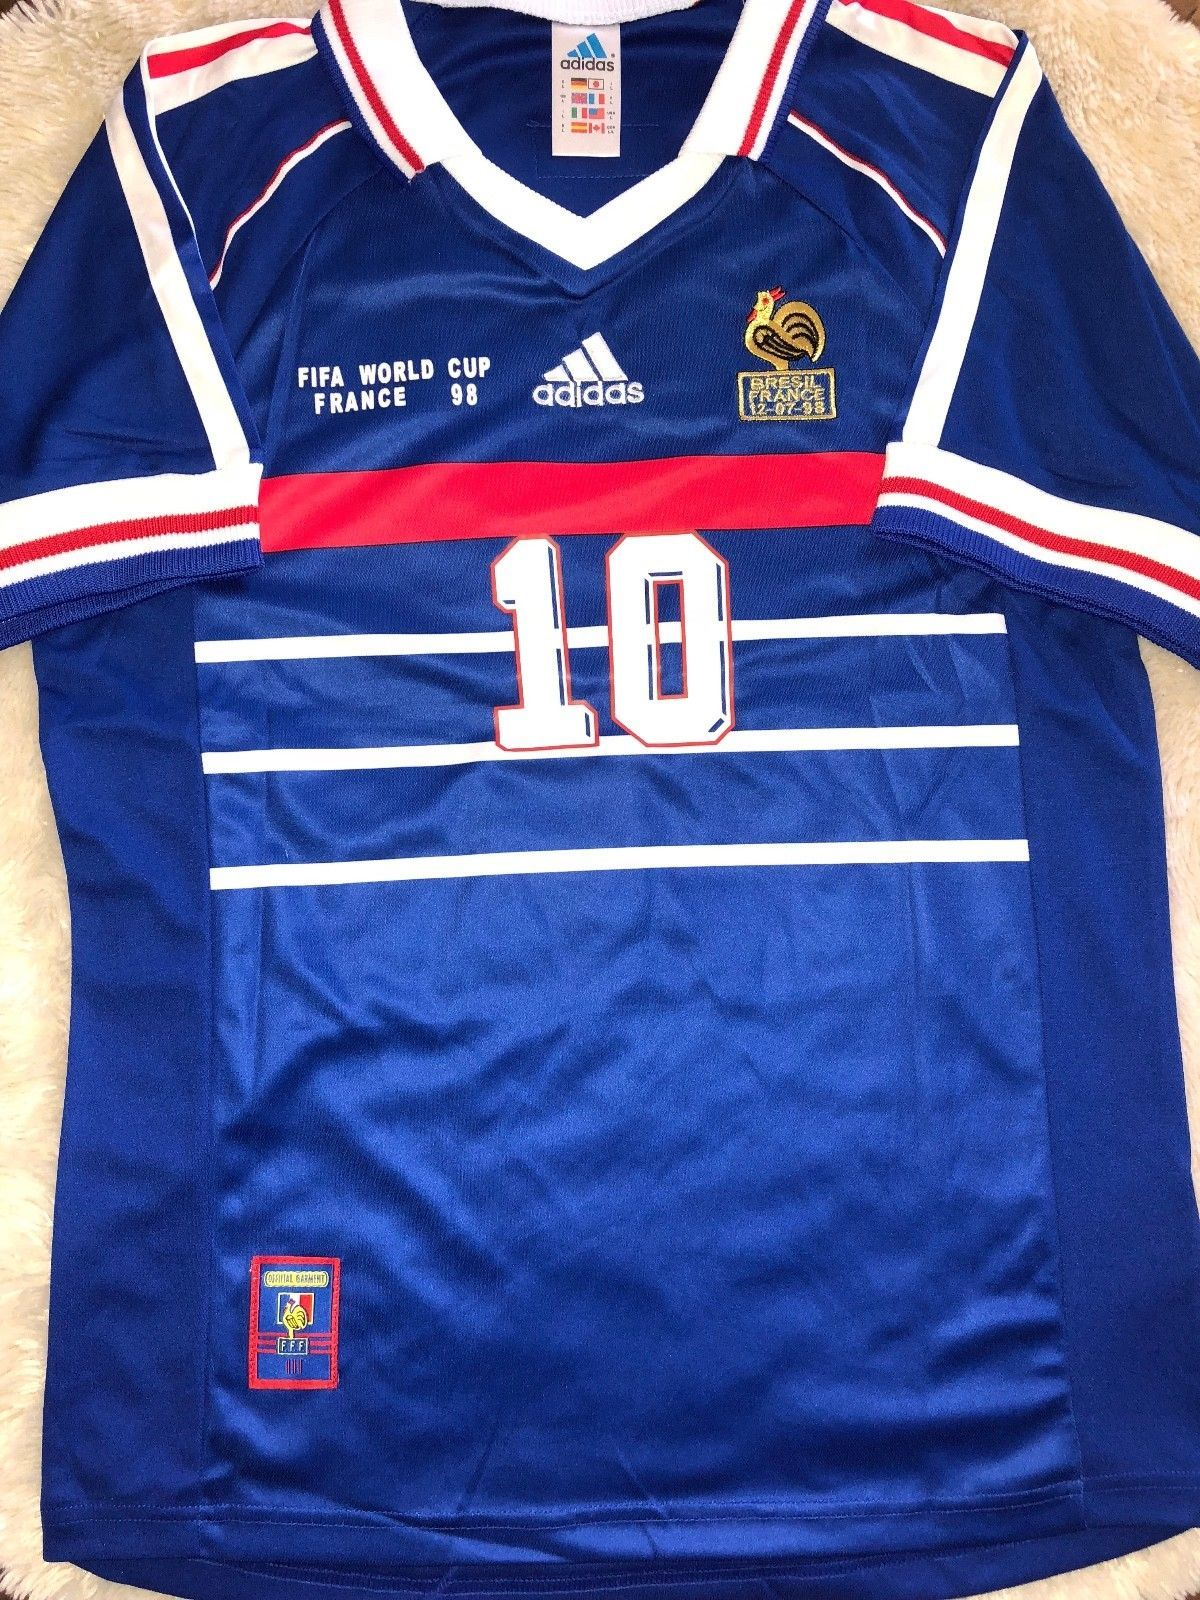 253d4f64d78 FRANCE ZIDANE 1998 WORLD CUP RETRO JERSEY  COLLECTION SALE